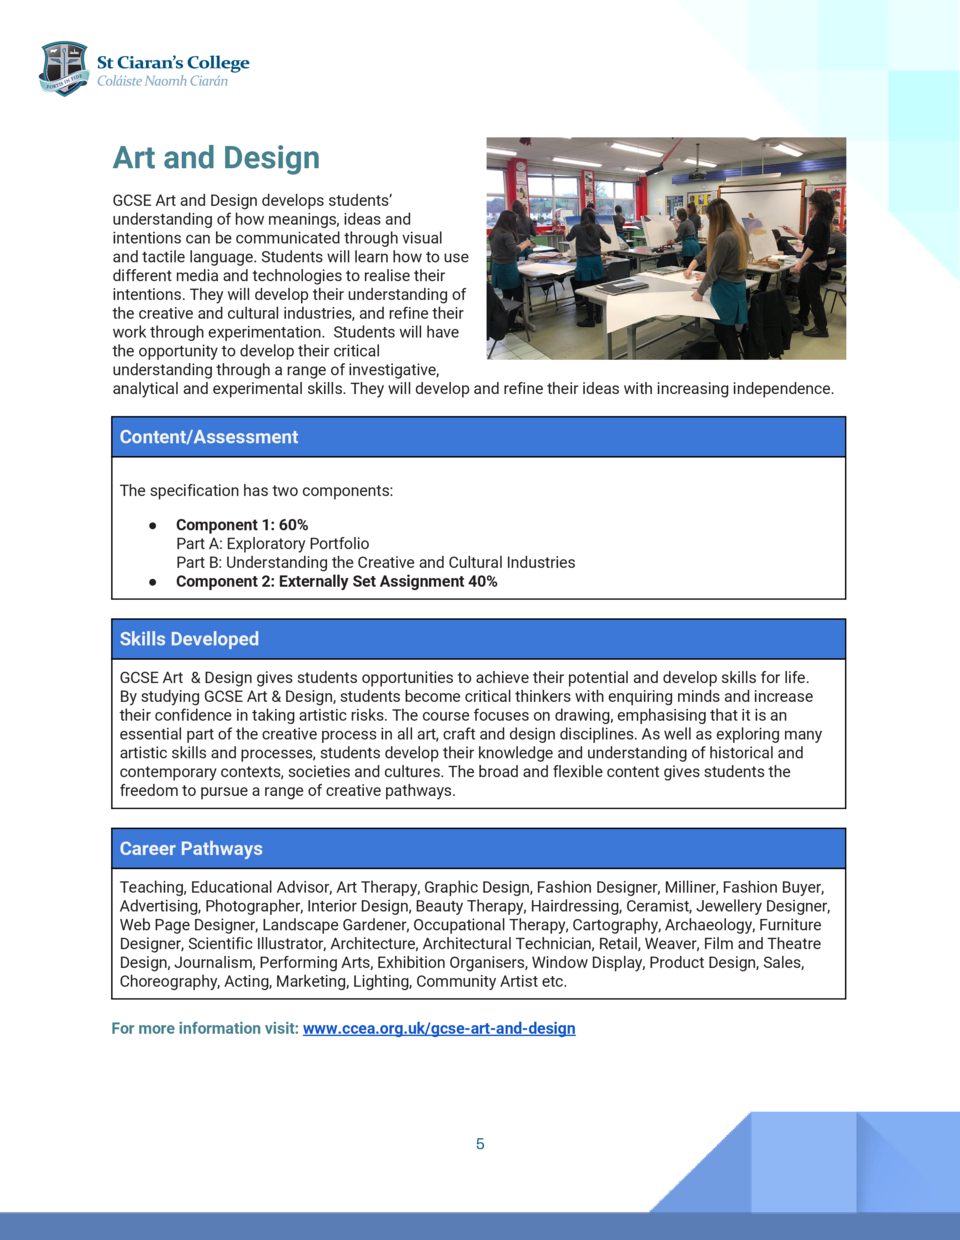 Art Agriculture and Design   and Land Use   GCSE The CCEA Art and GCSE Design Agriculture develops andstudents      La...